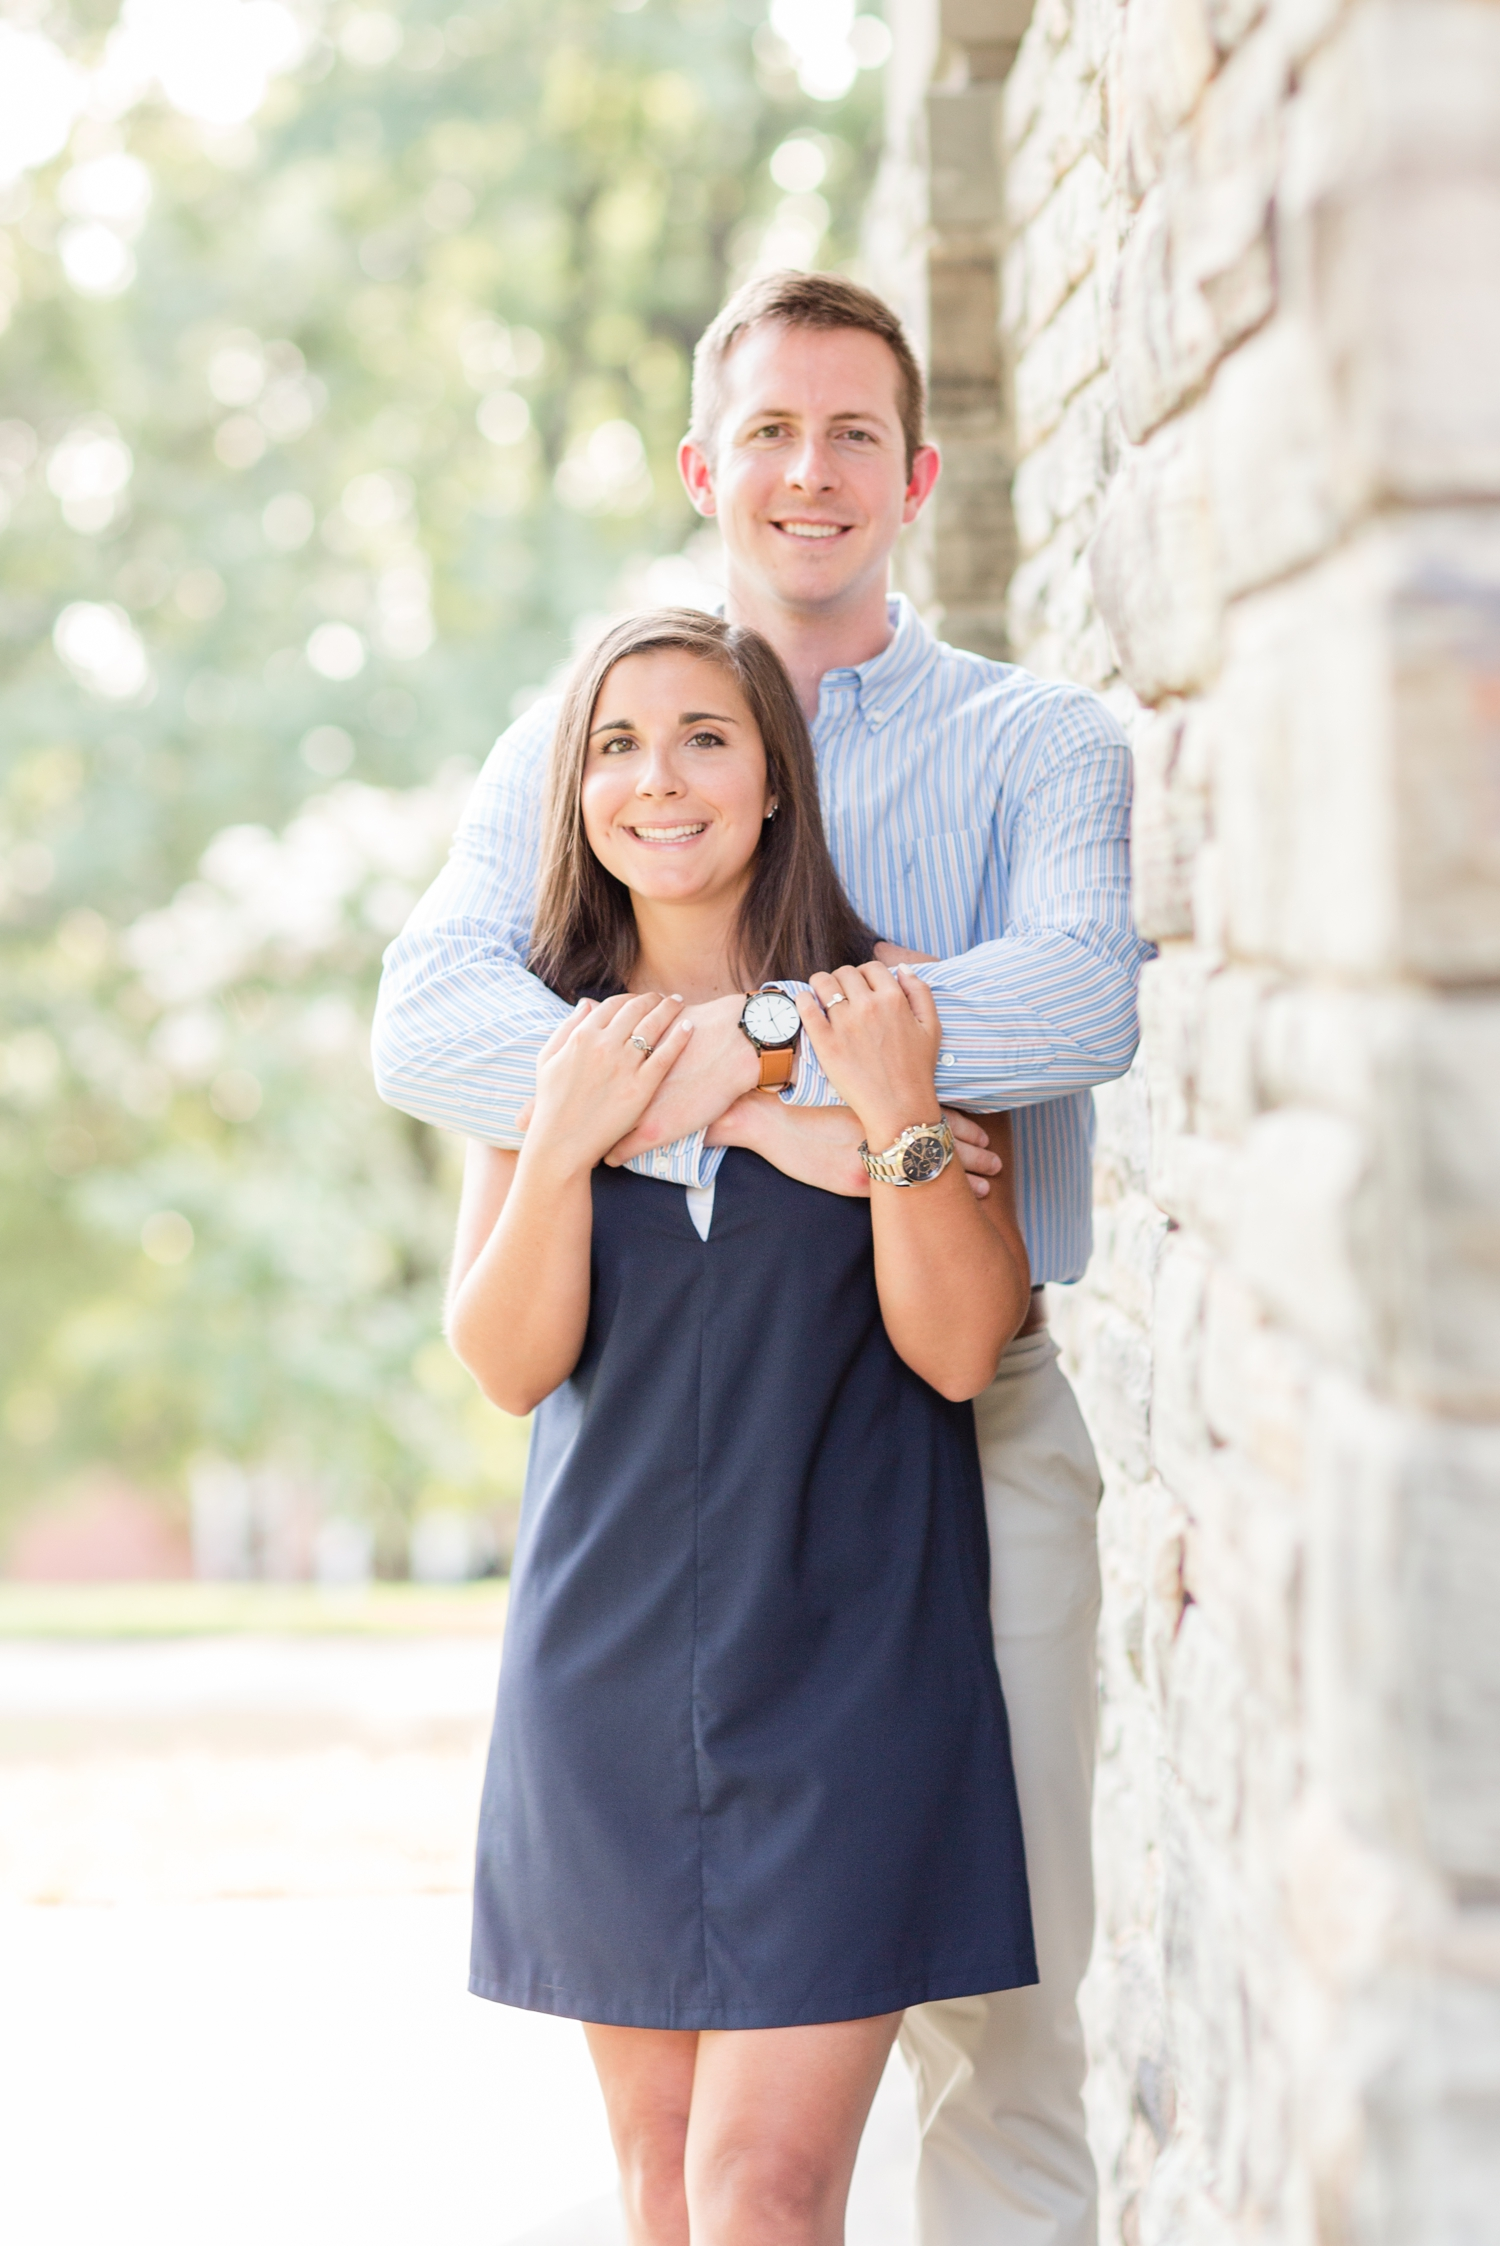 Jamie Wood & Daniel Schindler Engagement-18_Downtown-Baltimore-Maryland-engagement-photographer-anna-grace-photography-photo.jpg